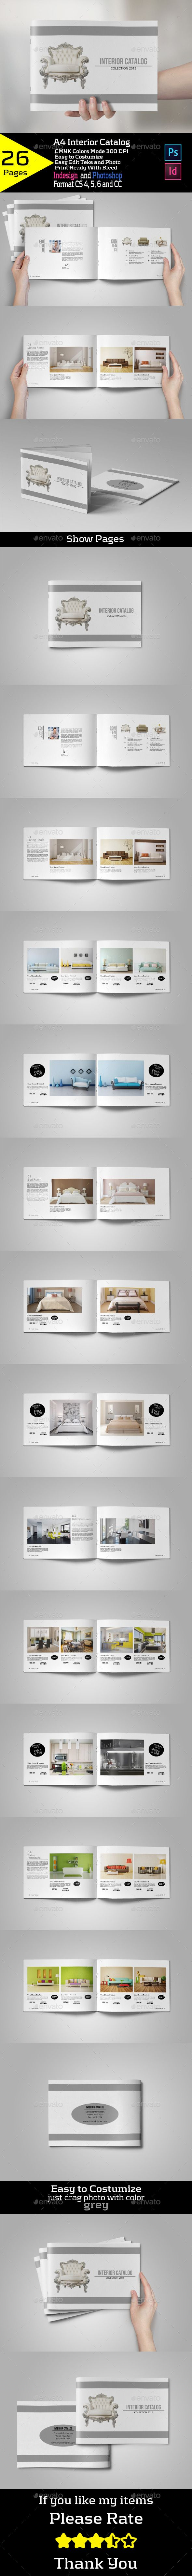 A4 Interior Catalog Brochure 26 Pages Template PSD, InDesign INDD #design Download: http://graphicriver.net/item/a4-interior-catalog/13164376?ref=ksioks